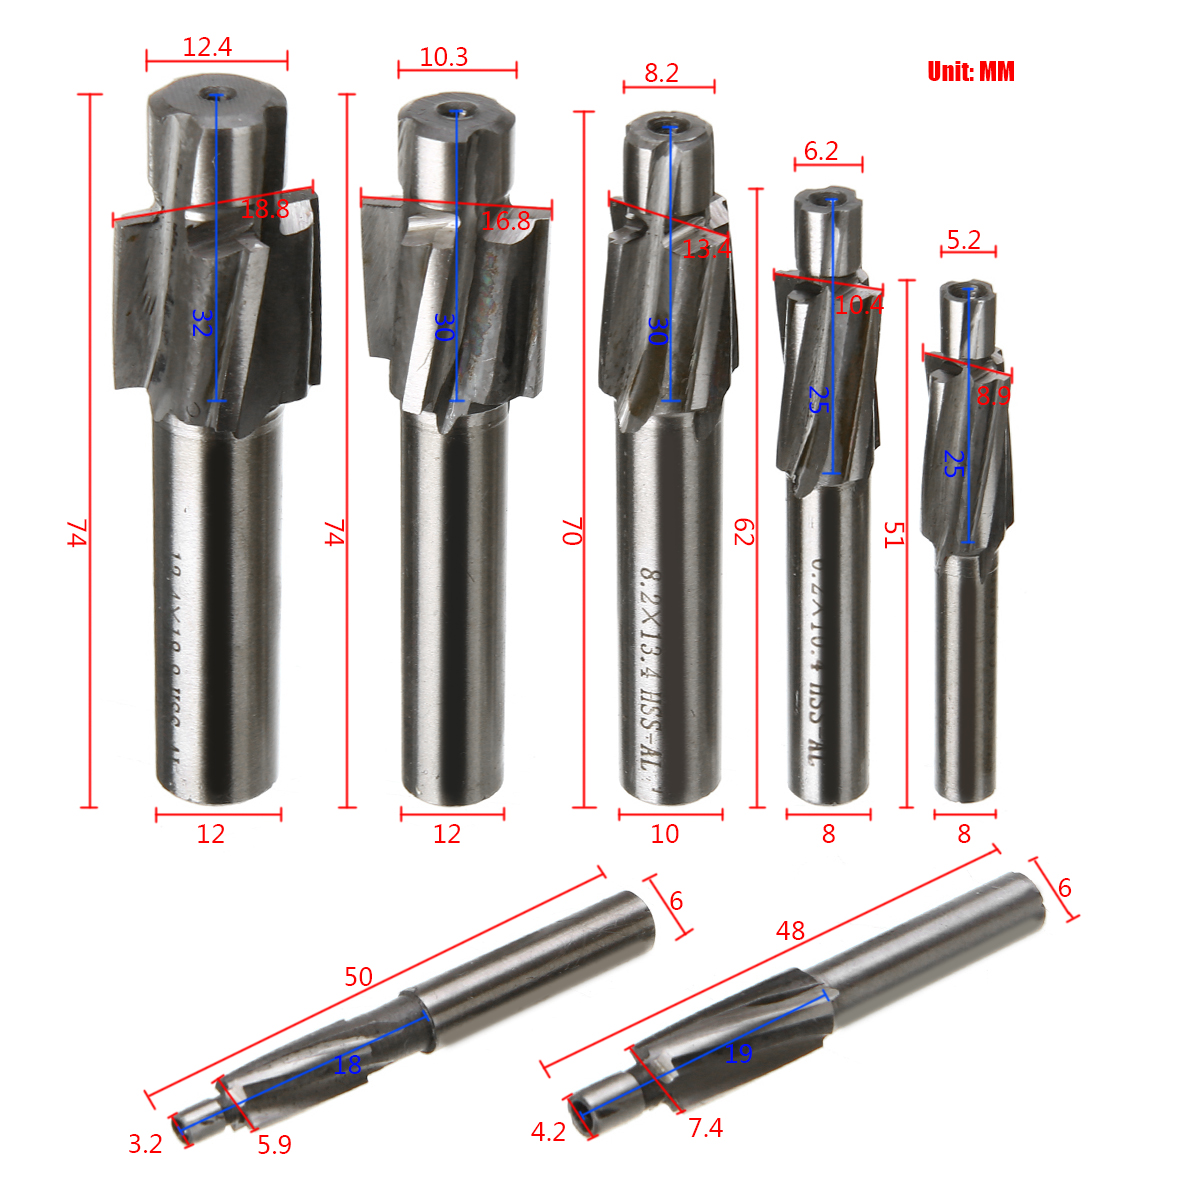 7pcs HSS Counterbore End Mill M3.2-M12.4 Pilot Slotting Milling Cutter For Power Tools